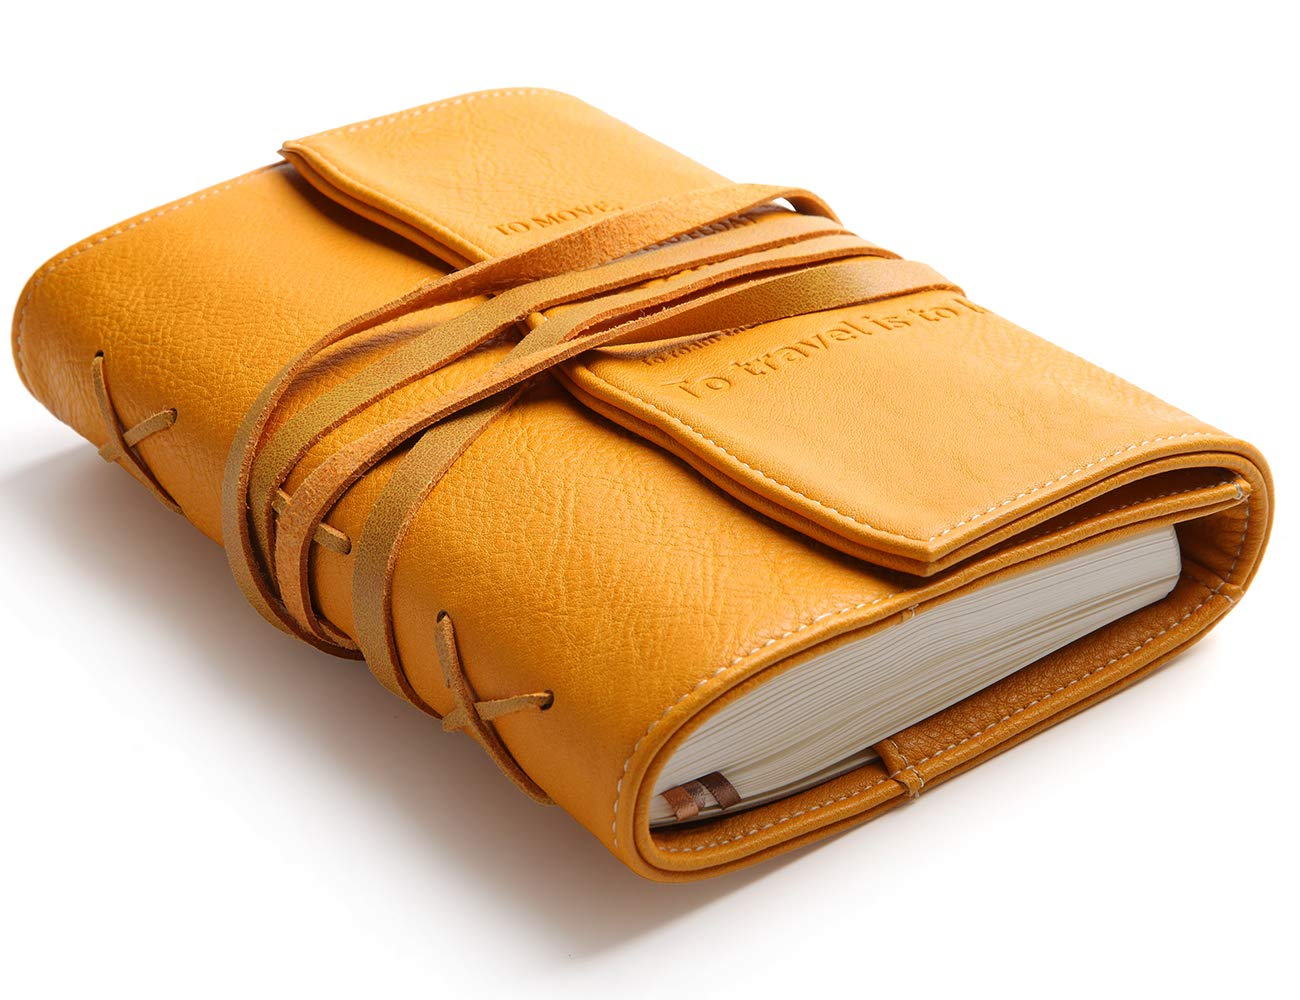 Refillable Personal Leather Journal-String Bound Vegan Leather Notebook with Build-in Pen Holder and Lined Diary For Men and Women-Creative Writing Gift for Writers,Teachers,Travellers,Artists